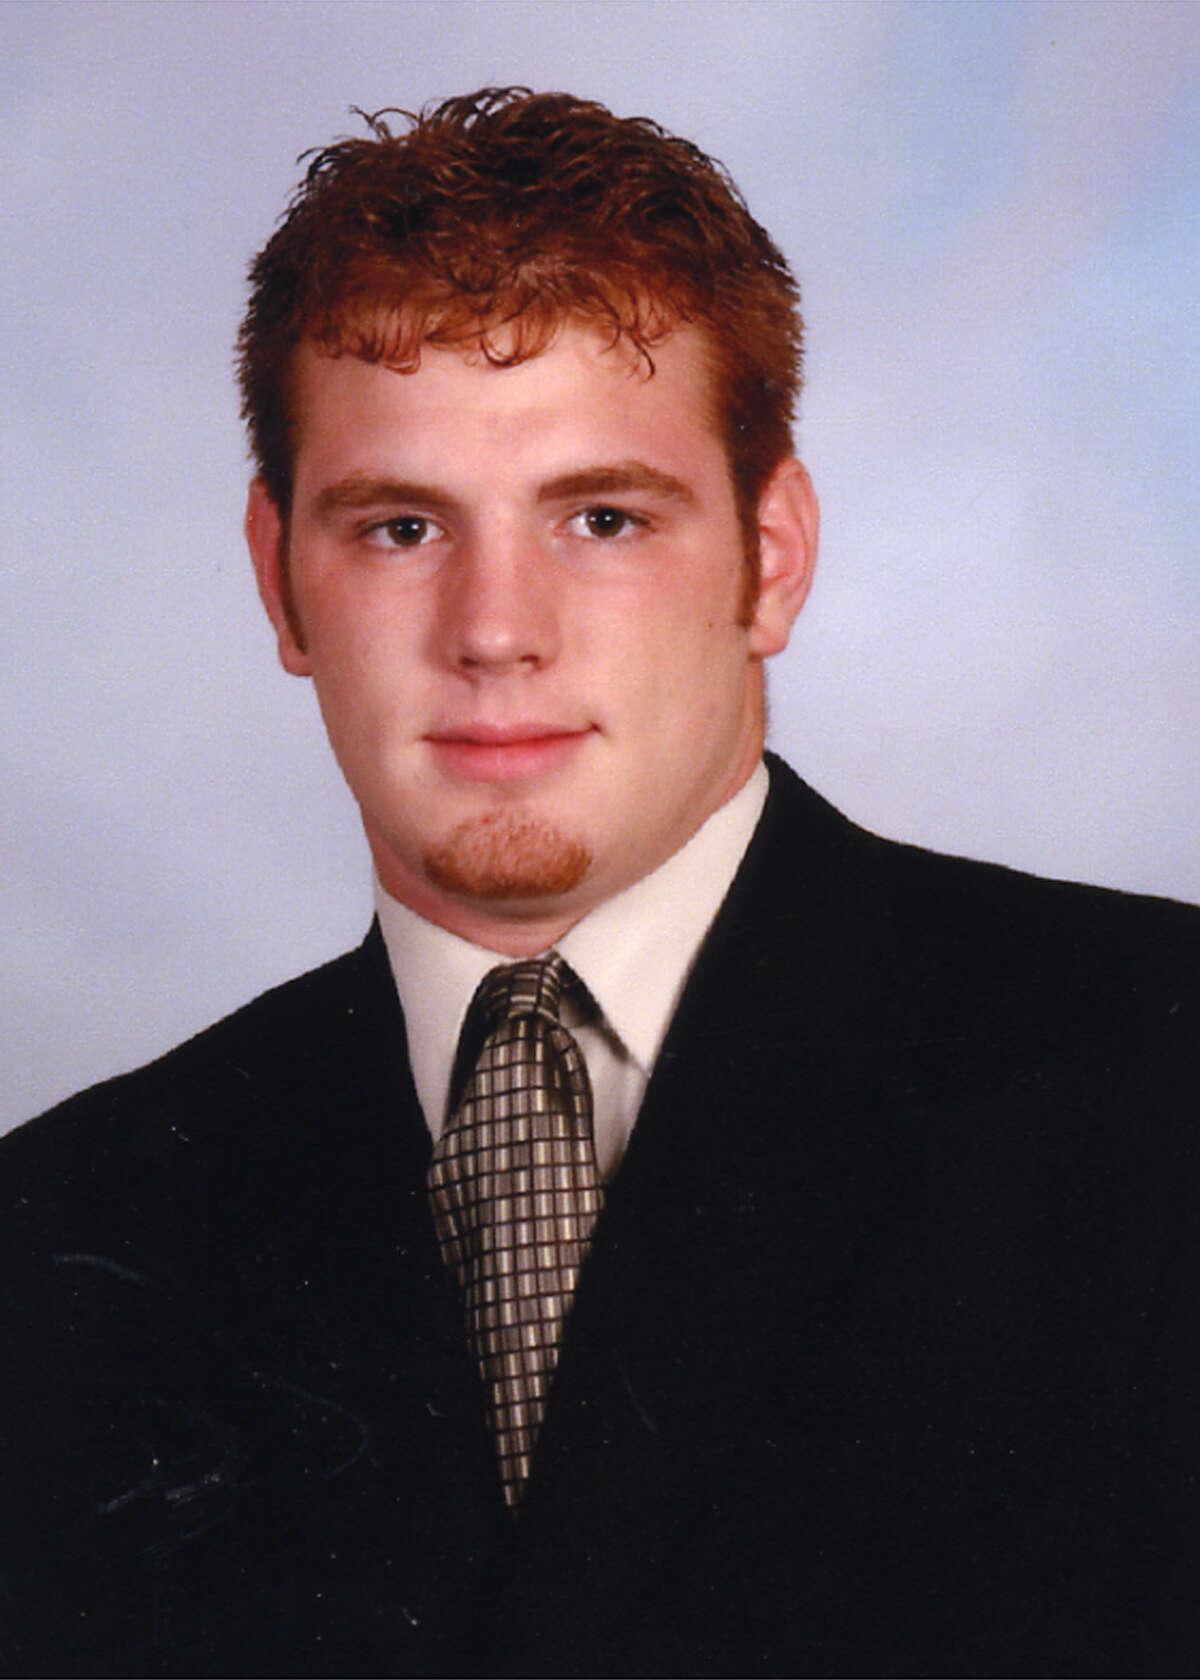 Craig Frear, pictured, disappeared from his Scotia neighborhood on June 27, 2004.